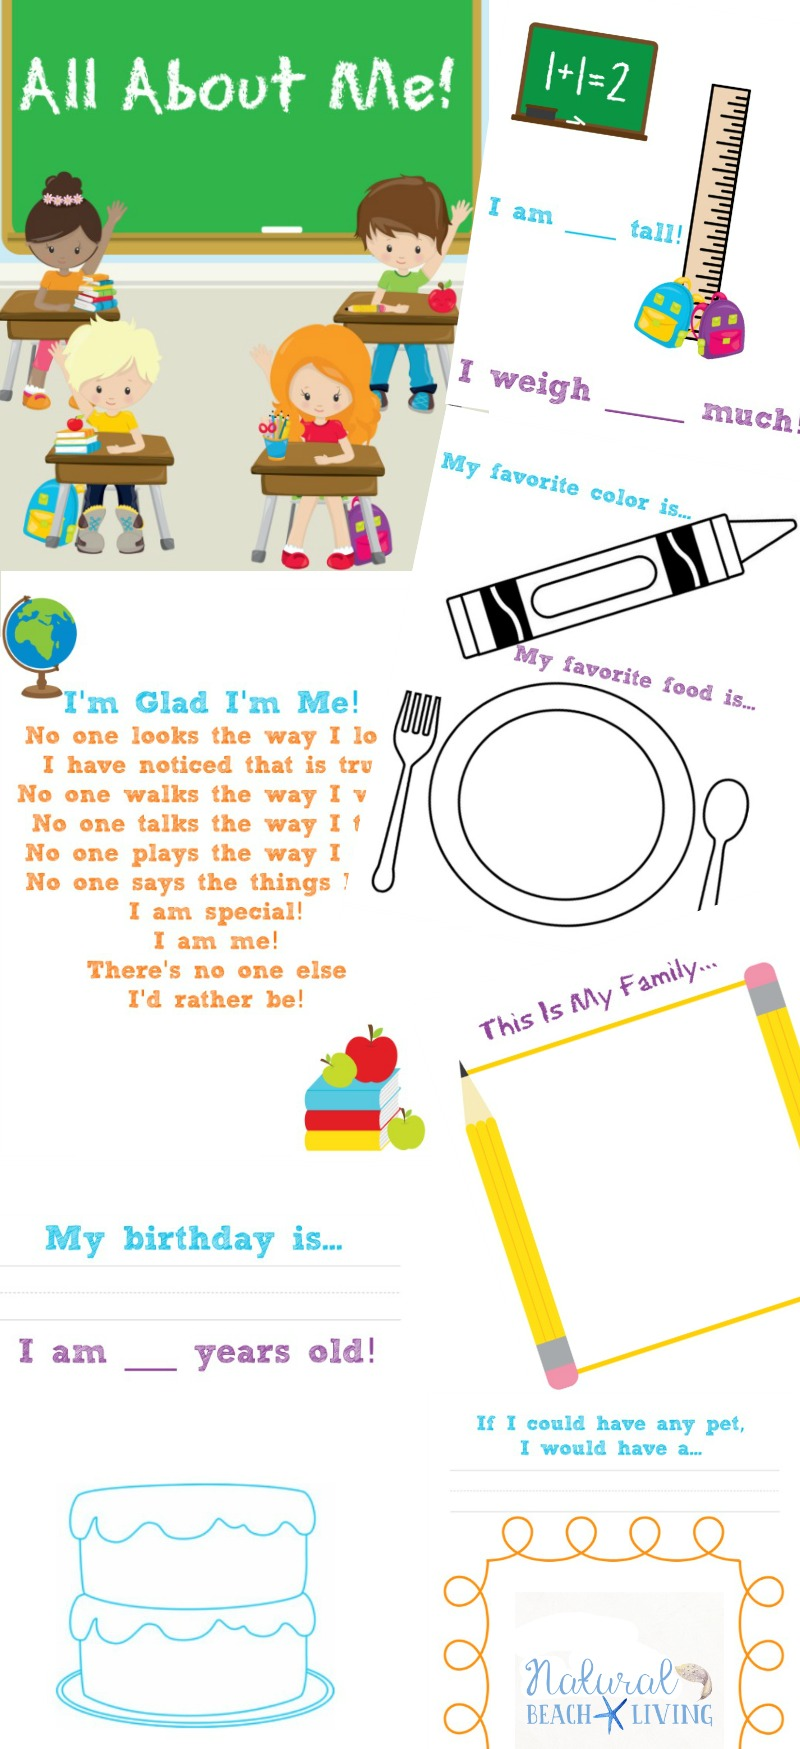 graphic relating to Printable All About Me identified as The Ideal All With regards to Me Preschool Topic Printables - Organic